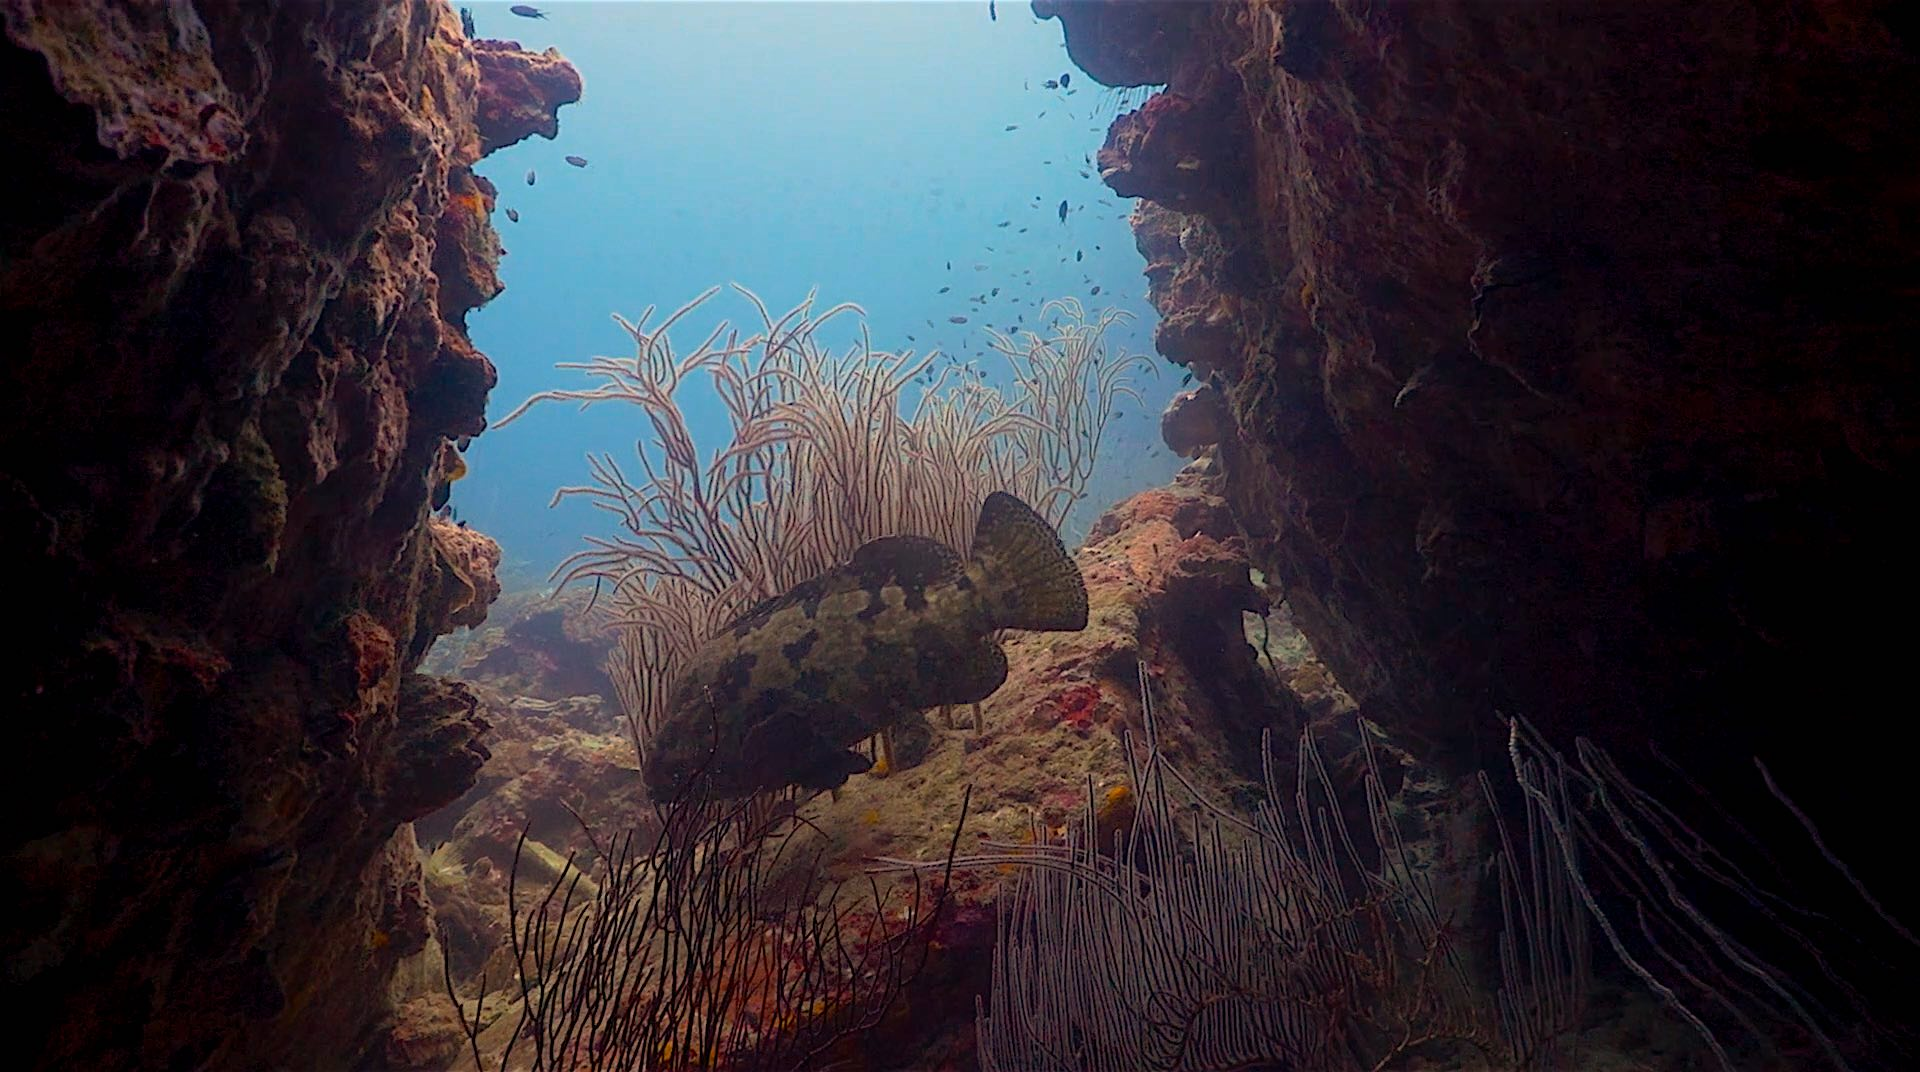 www.thefunkyturtle.com hin wong dive site koh tao coral reefs